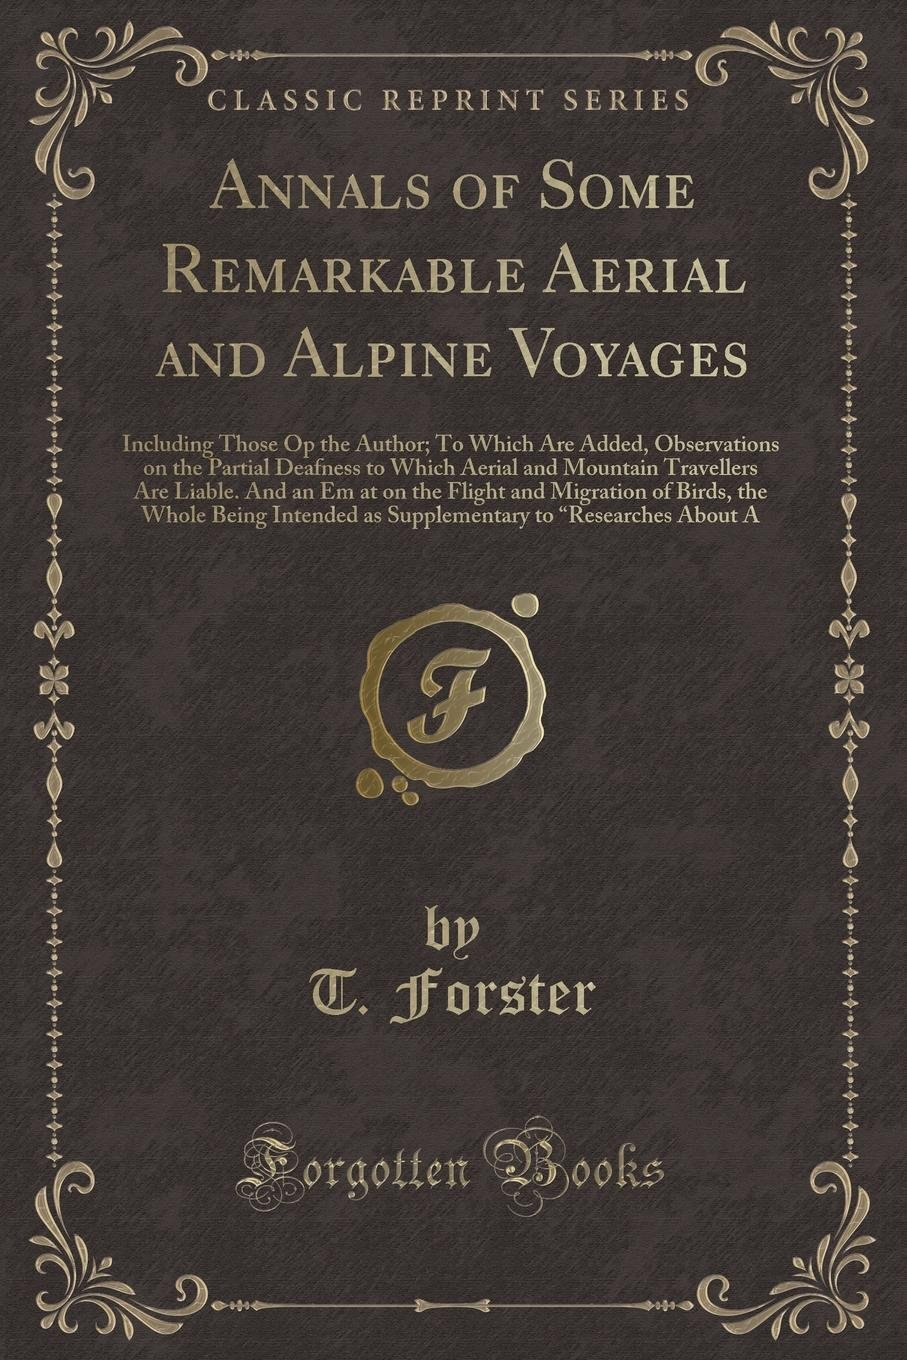 Download Annals of Some Remarkable Aerial and Alpine Voyages: Including Those Op the Author; To Which Are Added, Observations on the Partial Deafness to Which ... Flight and Migration of Birds, the Whole B ebook